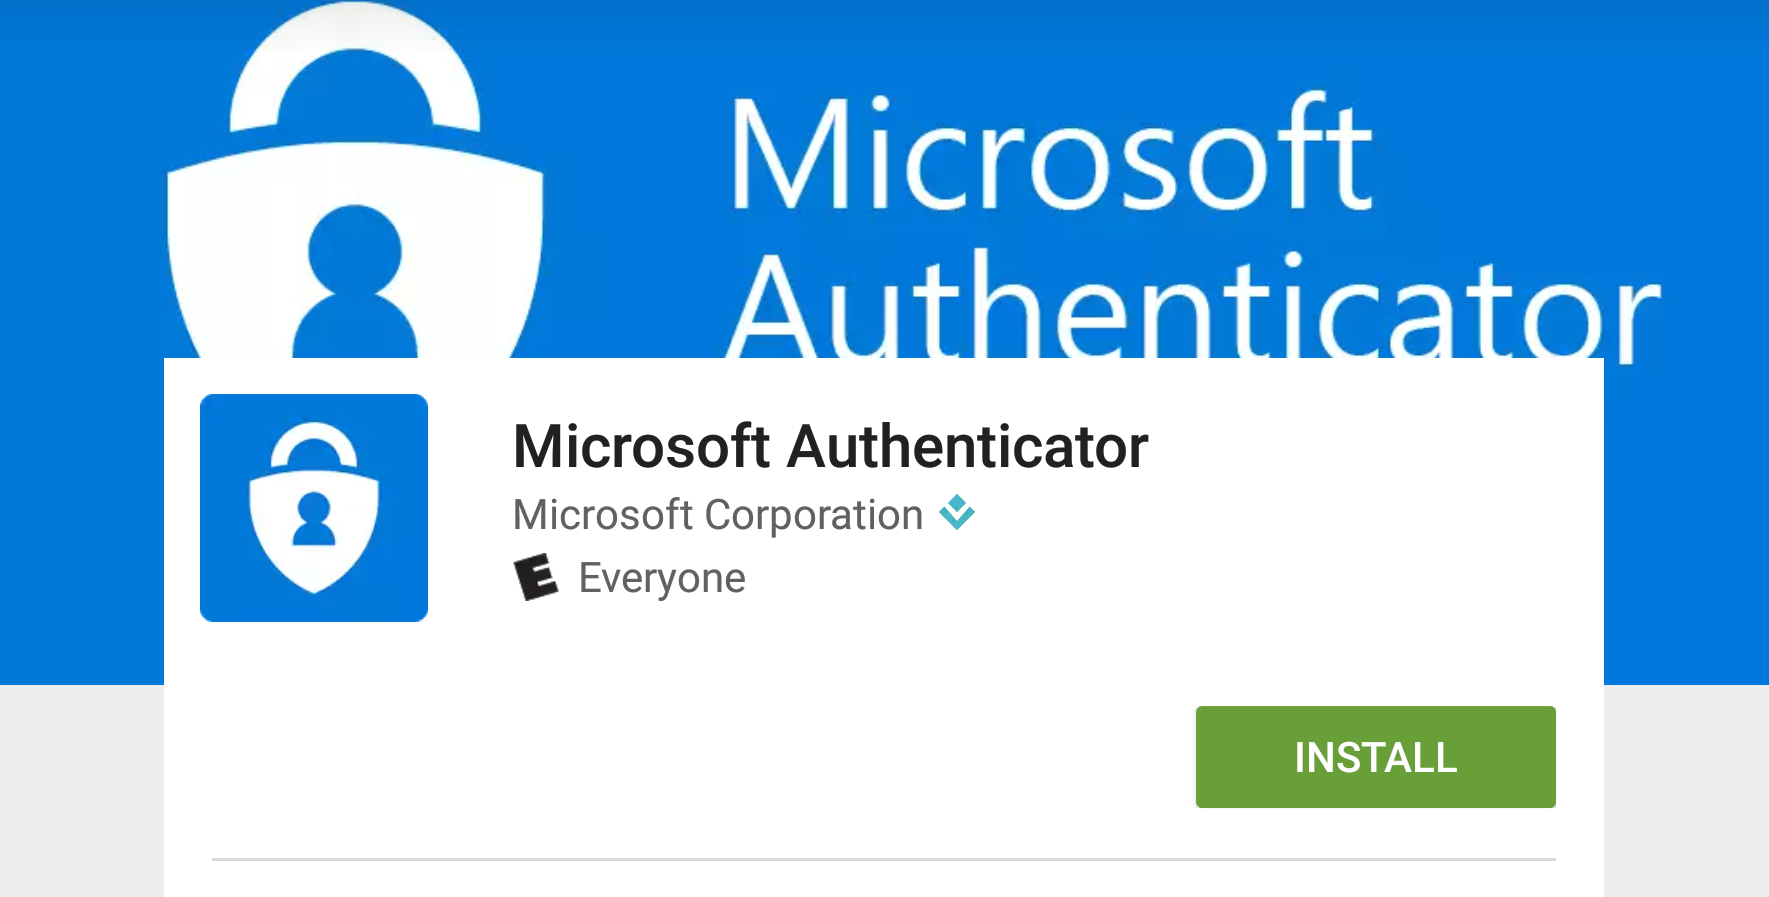 Azure Authenticator Now Microsoft Authenticator on samsung htc